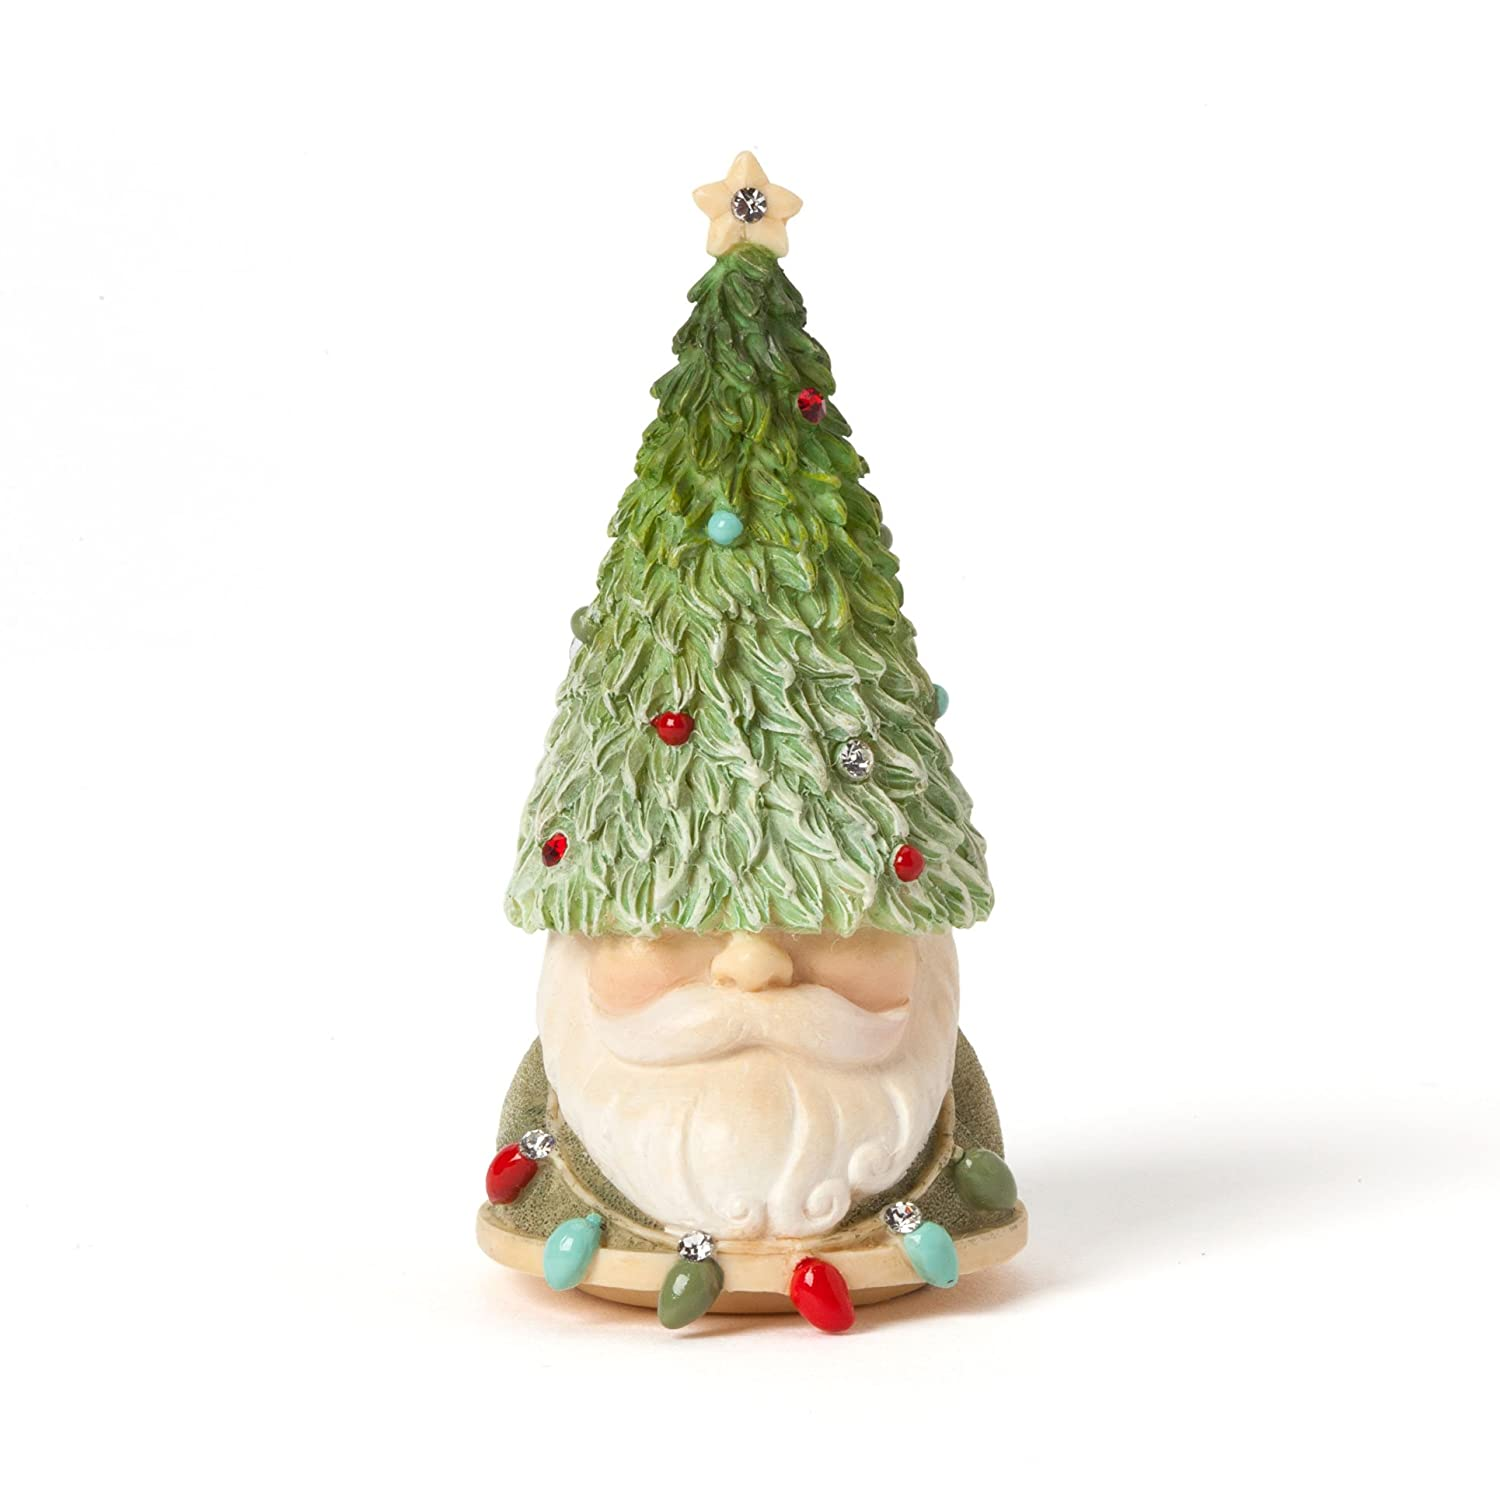 Enesco Heart of Christmas Gift Deck The Gnome Figurine, 2.56-Inch  casio gma s110cm 2a